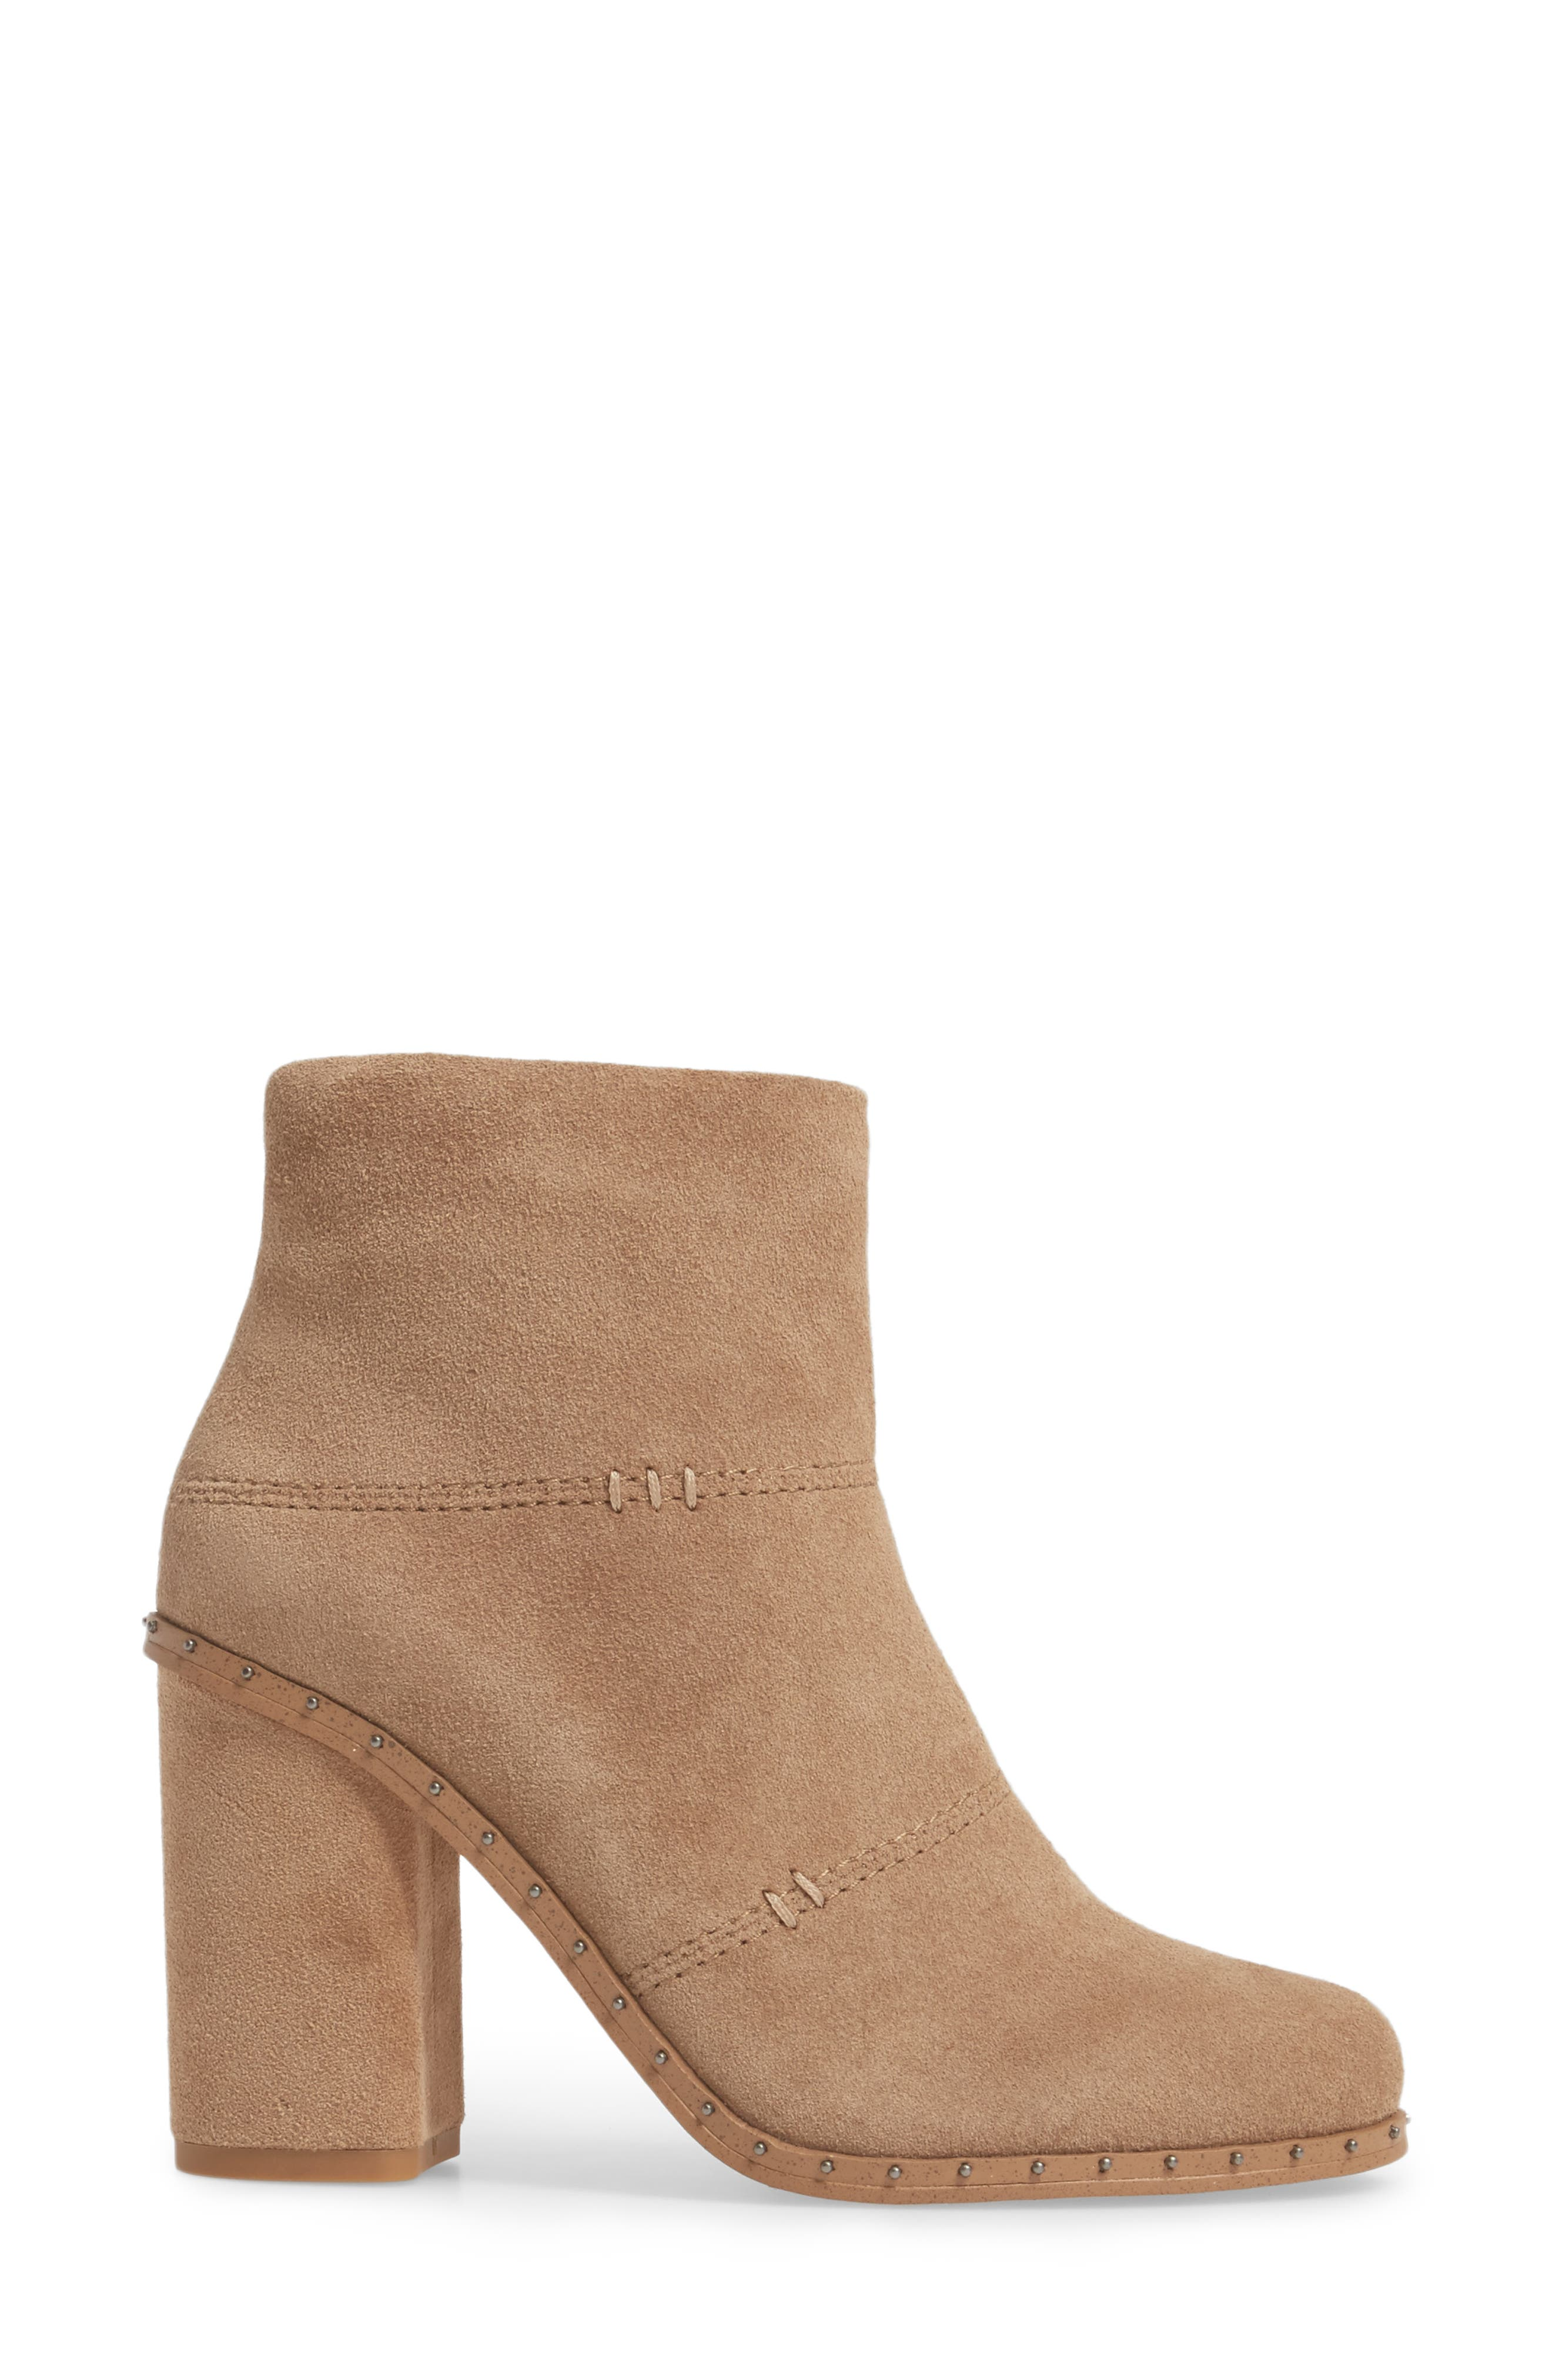 Rita Bootie,                             Alternate thumbnail 3, color,                             Light Taupe Suede